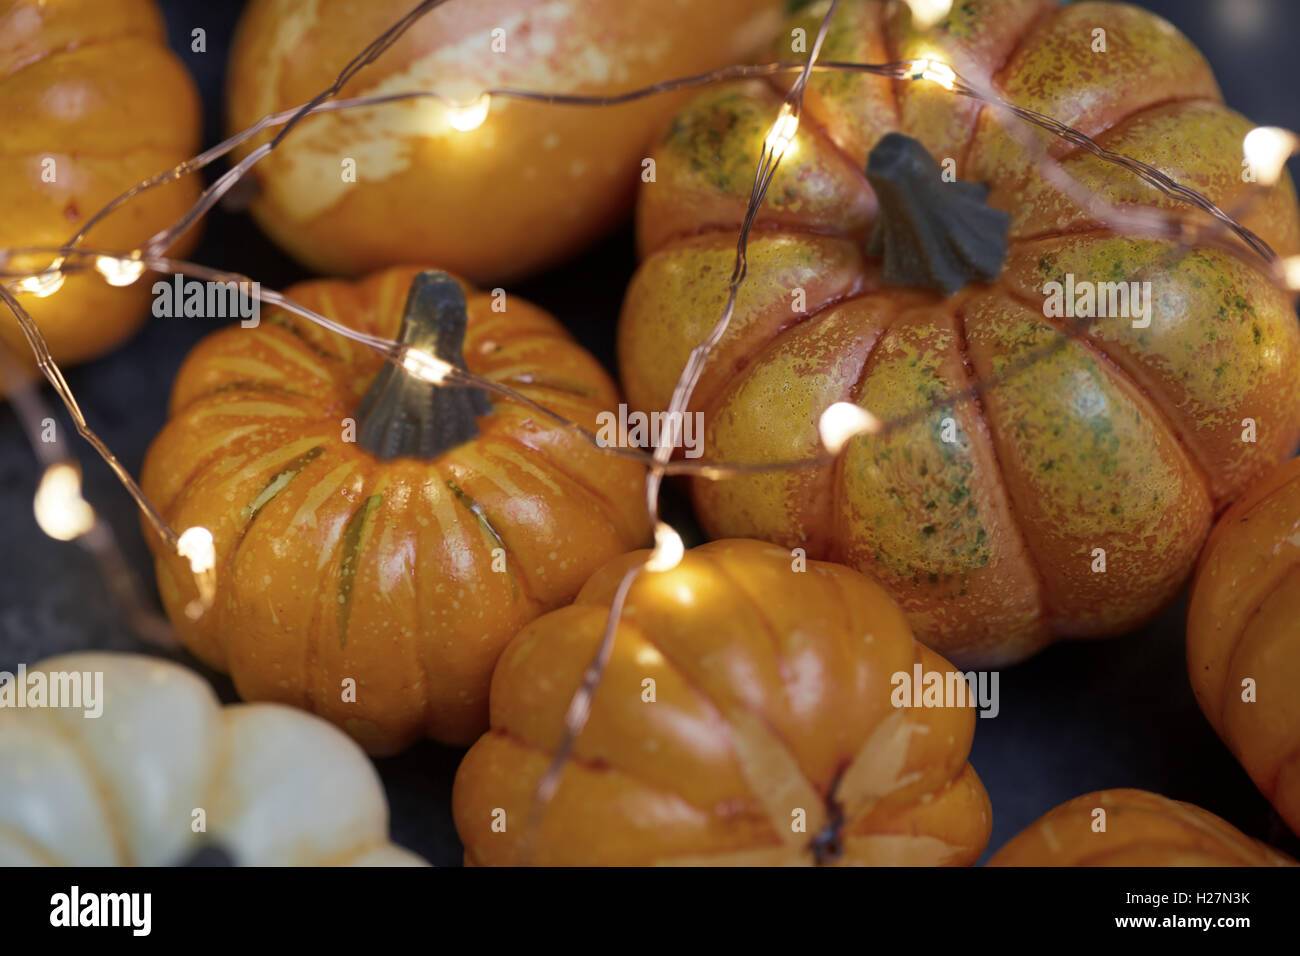 Halloween pumpkins with electric illumination Stock Photo